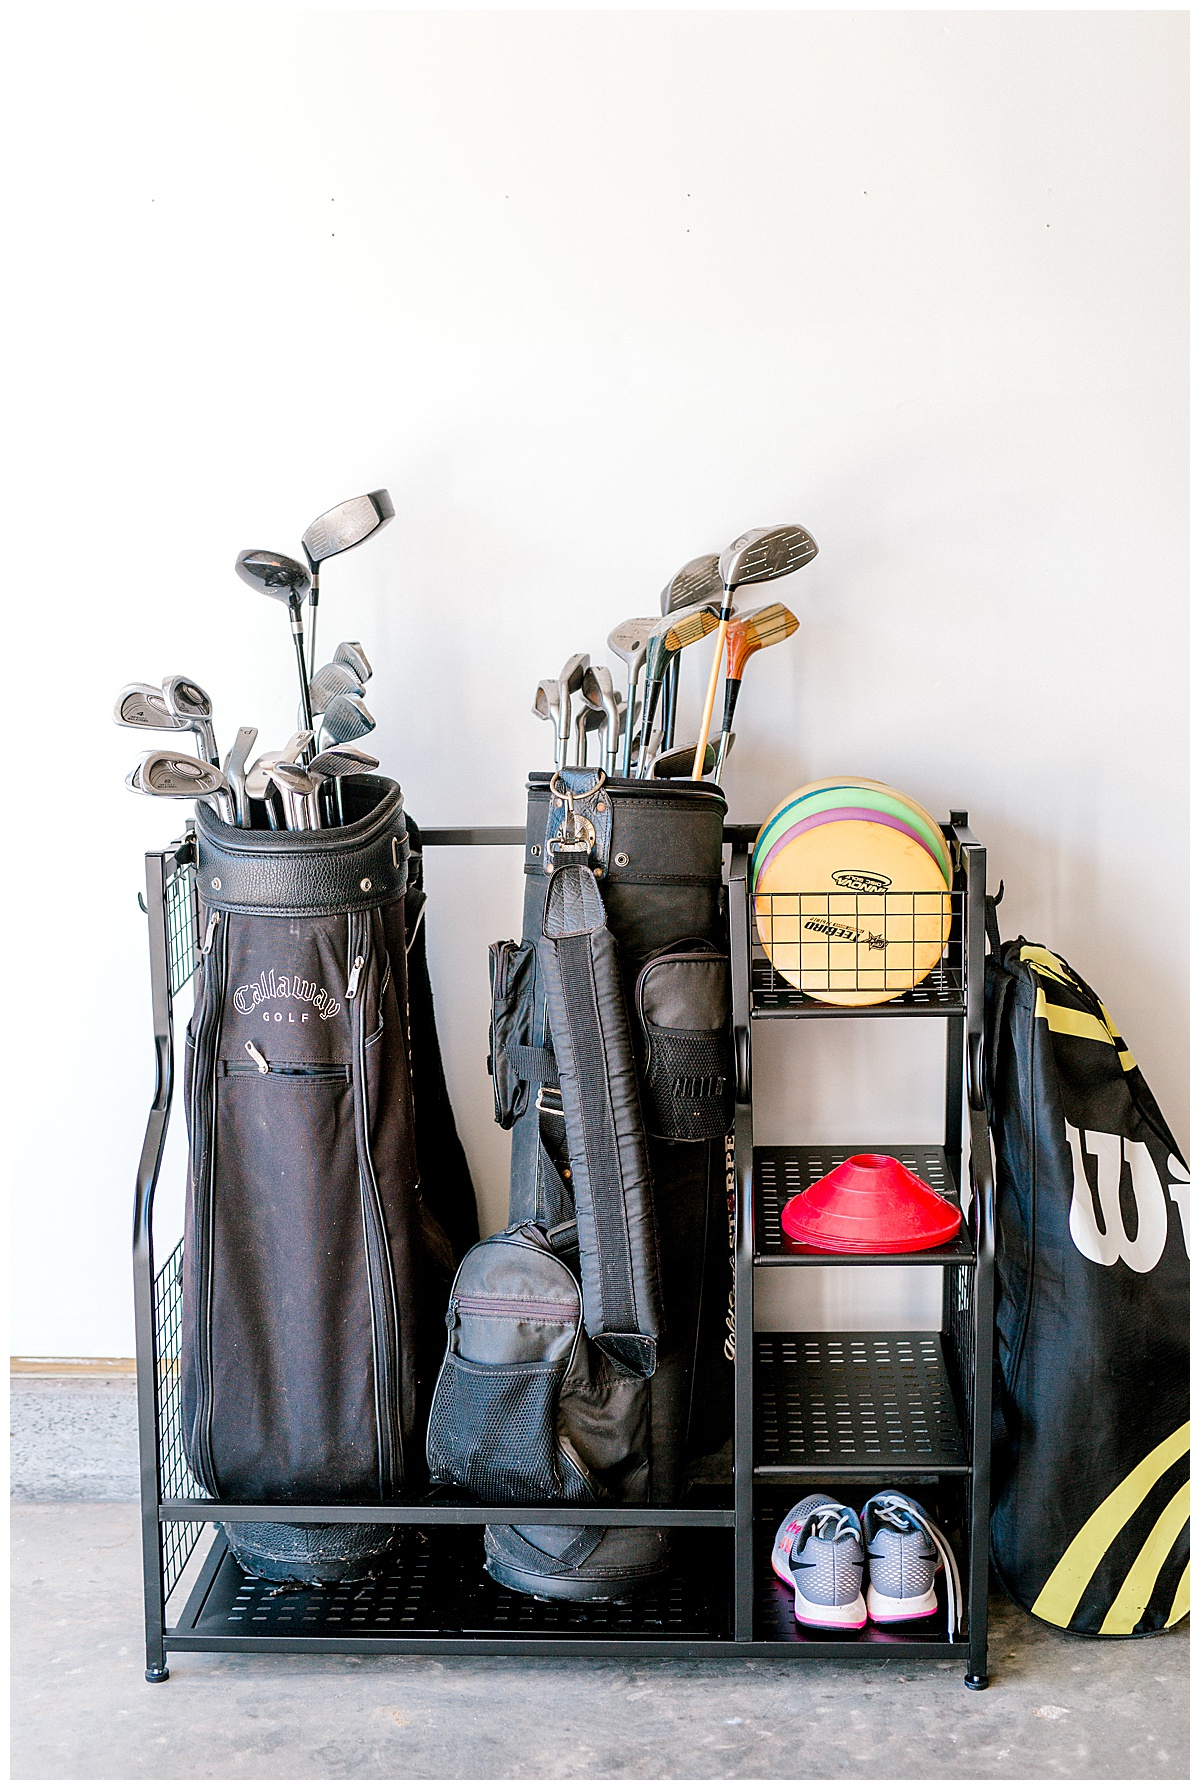 A garage organizer for gold equipment with two golf bags and a pair of shoes.